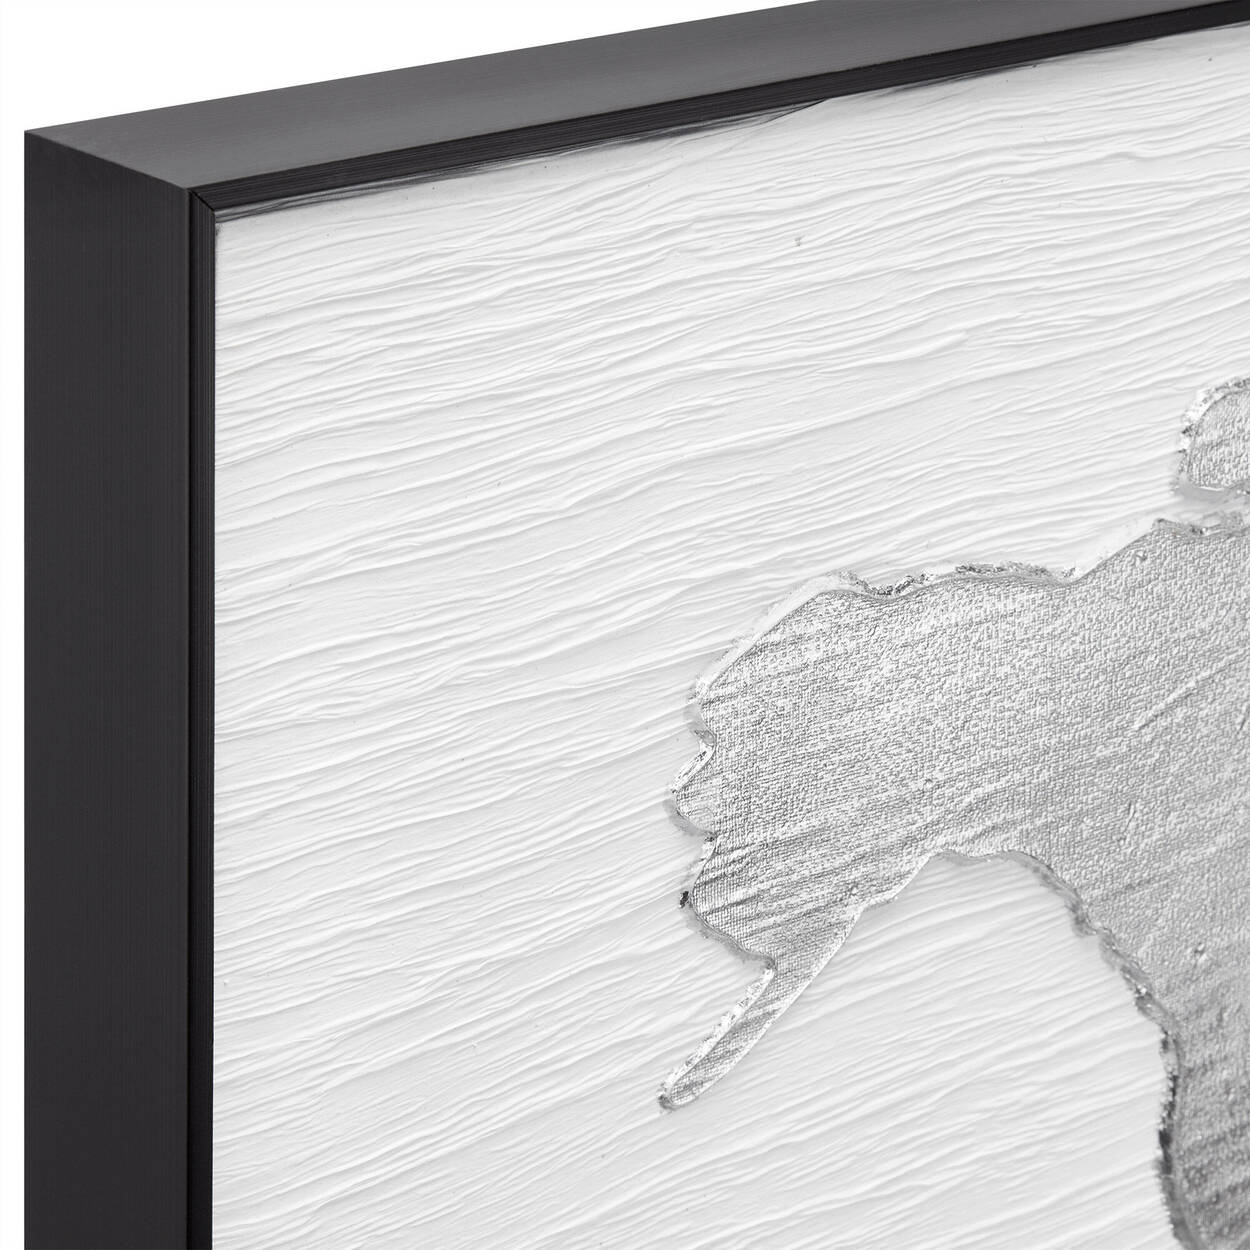 Worl Map Framed Oil Painting